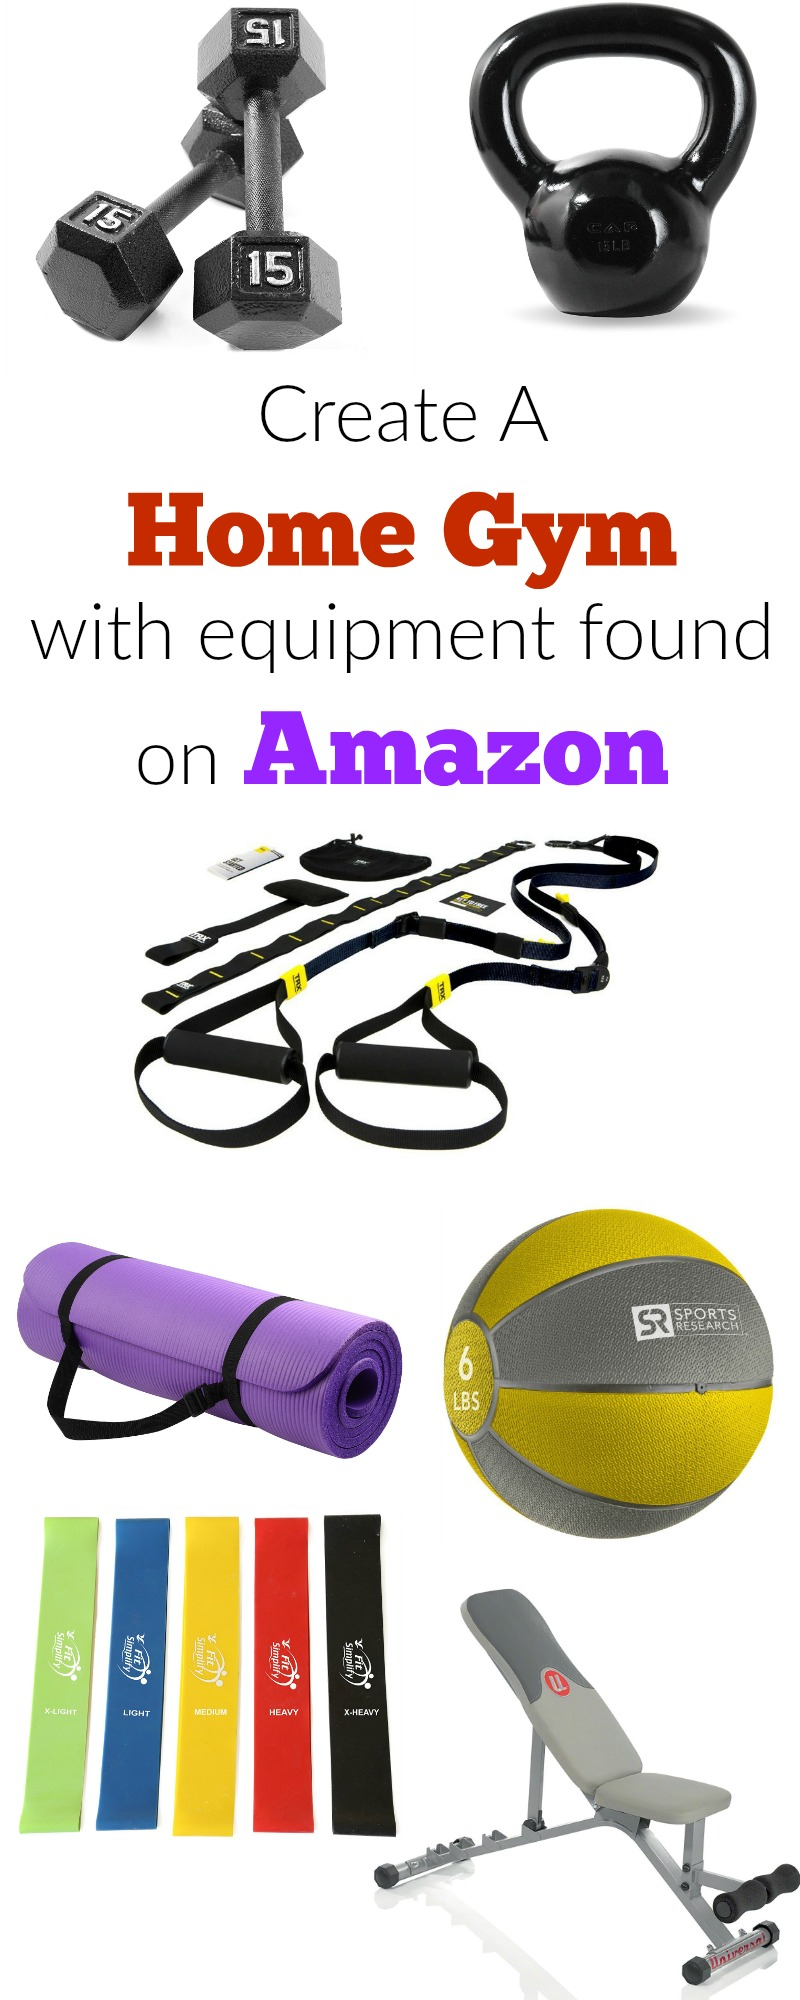 Have you ever wanted your own home gym?  Well now you can have it, all with equipment found on Amazon!